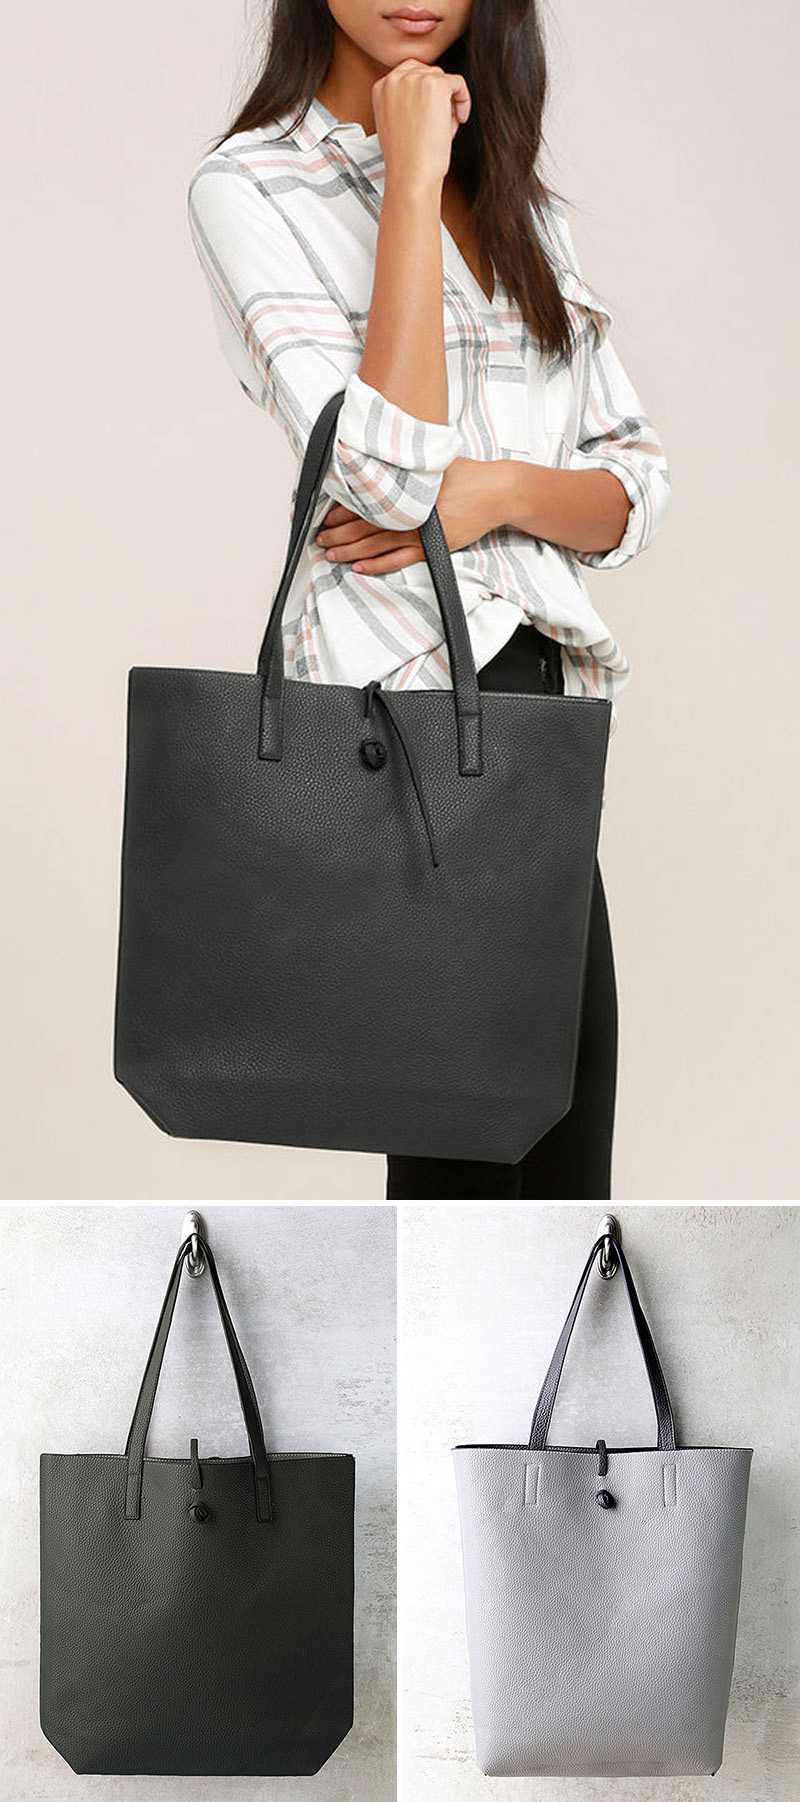 This modern reversible grey vegan leather tote has a tie closure to make sure all the contents of your bag stay inside.